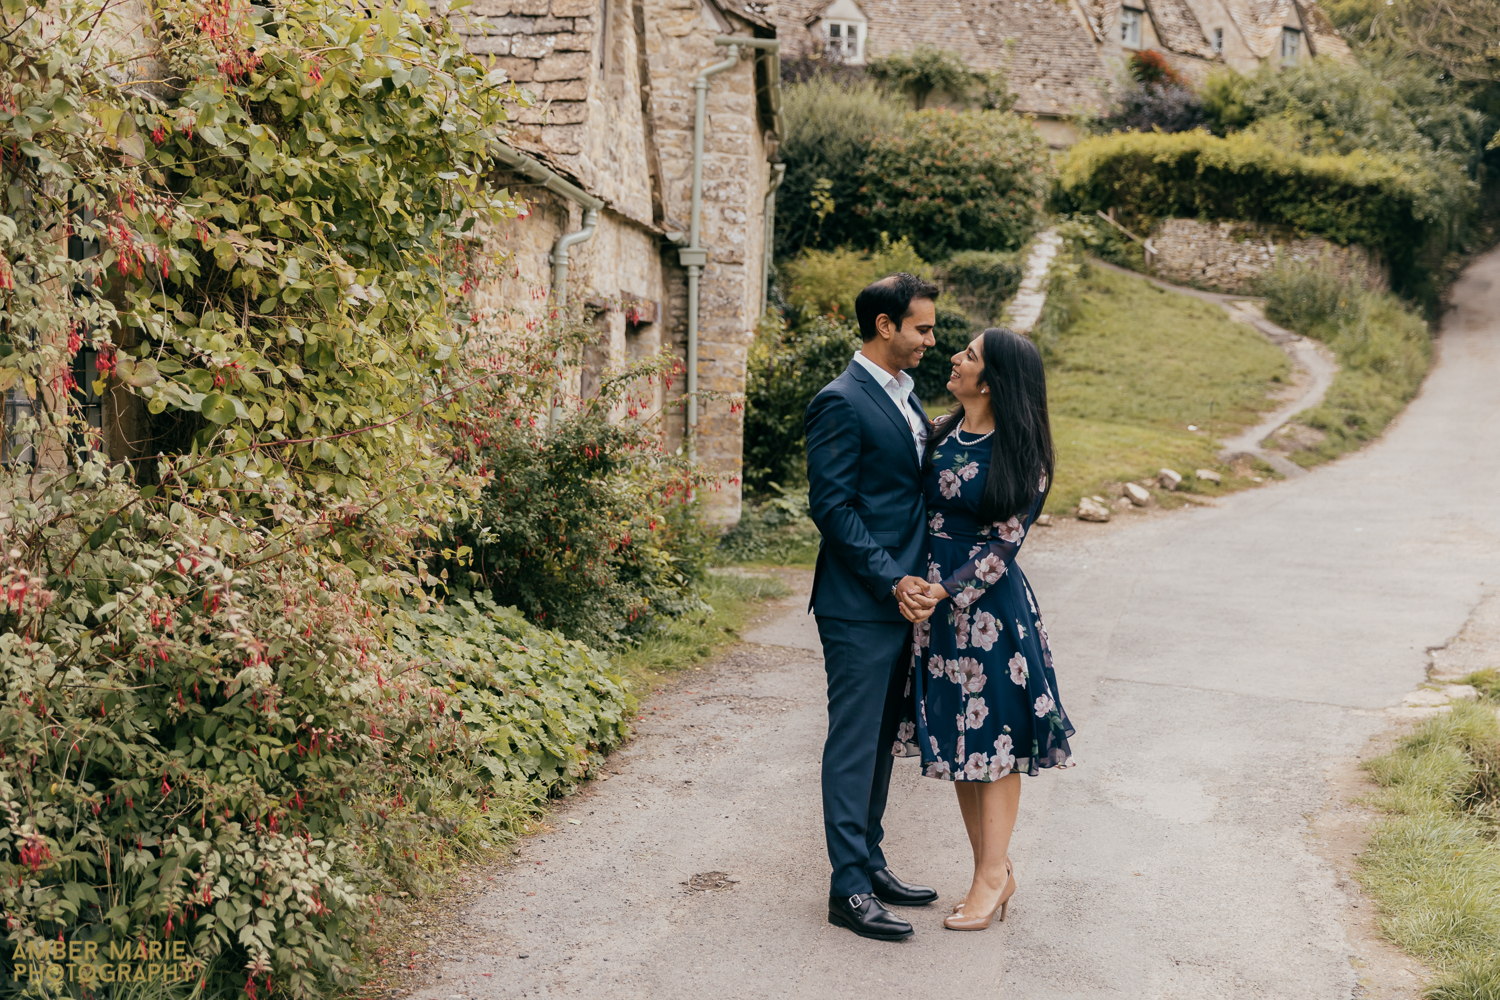 A tasteful and stylish portrait of a happy couple in The Cotswolds.